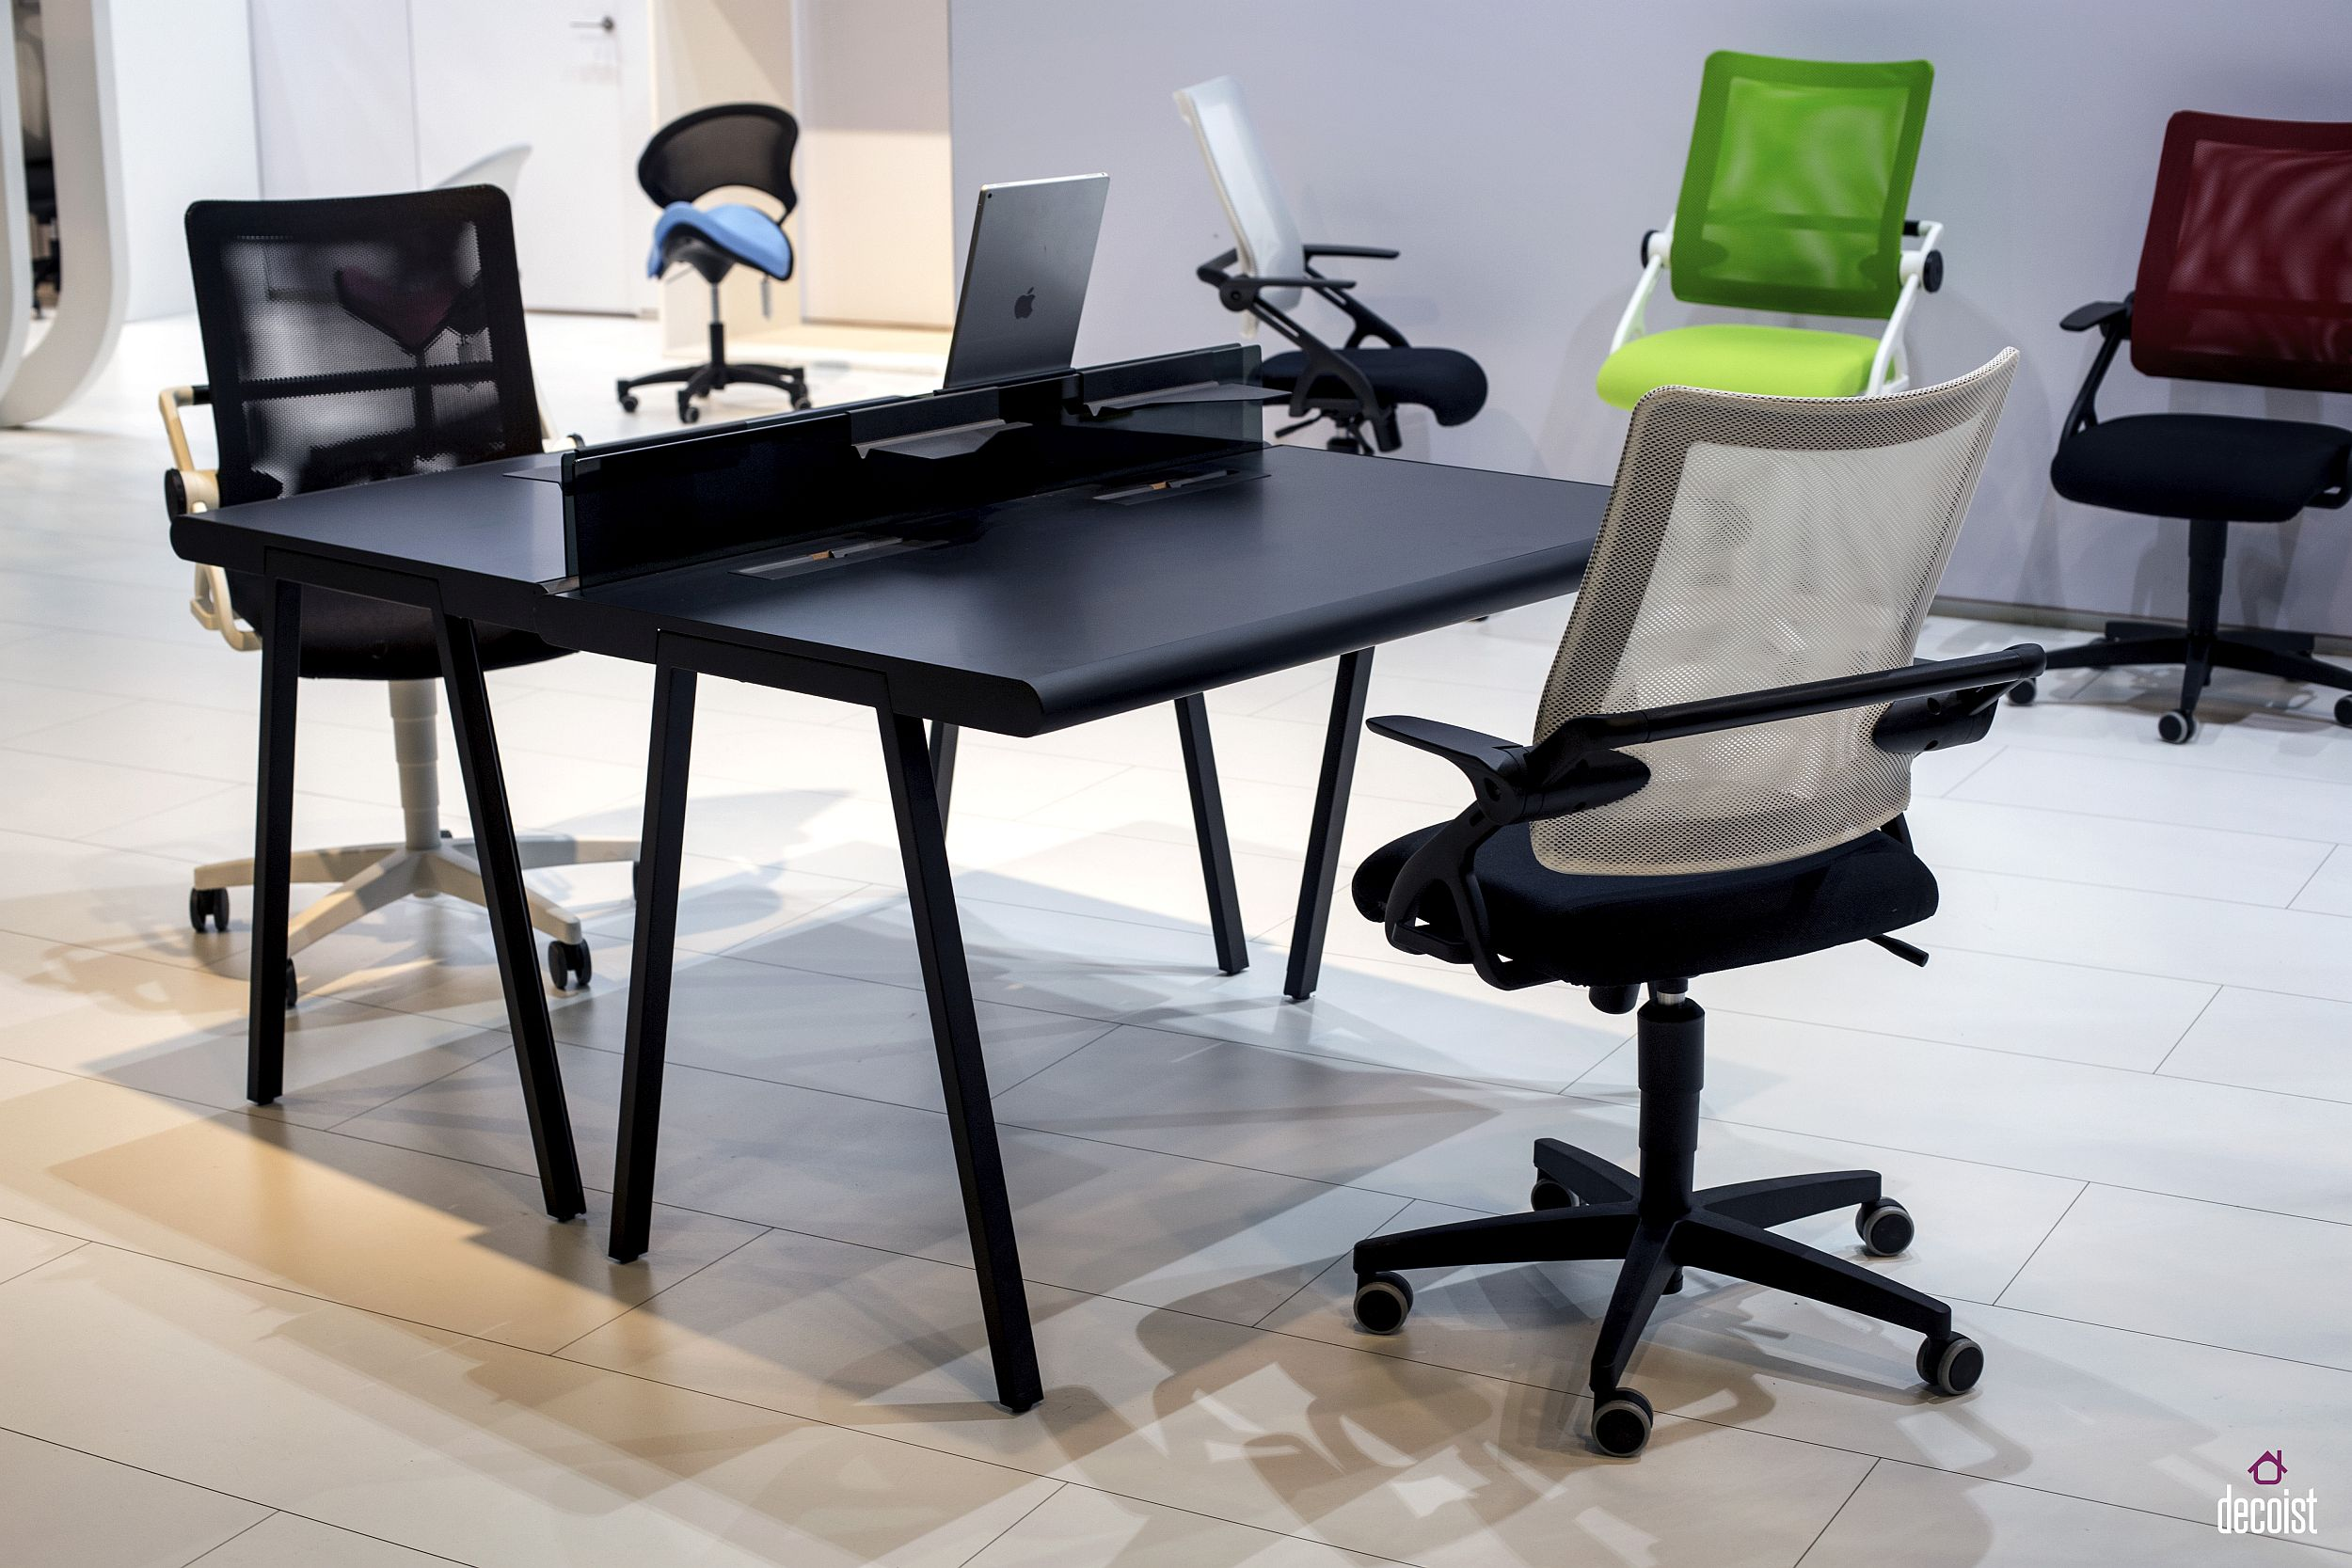 Fabulous finds 15 work desks for a trendy home office for Work desks home